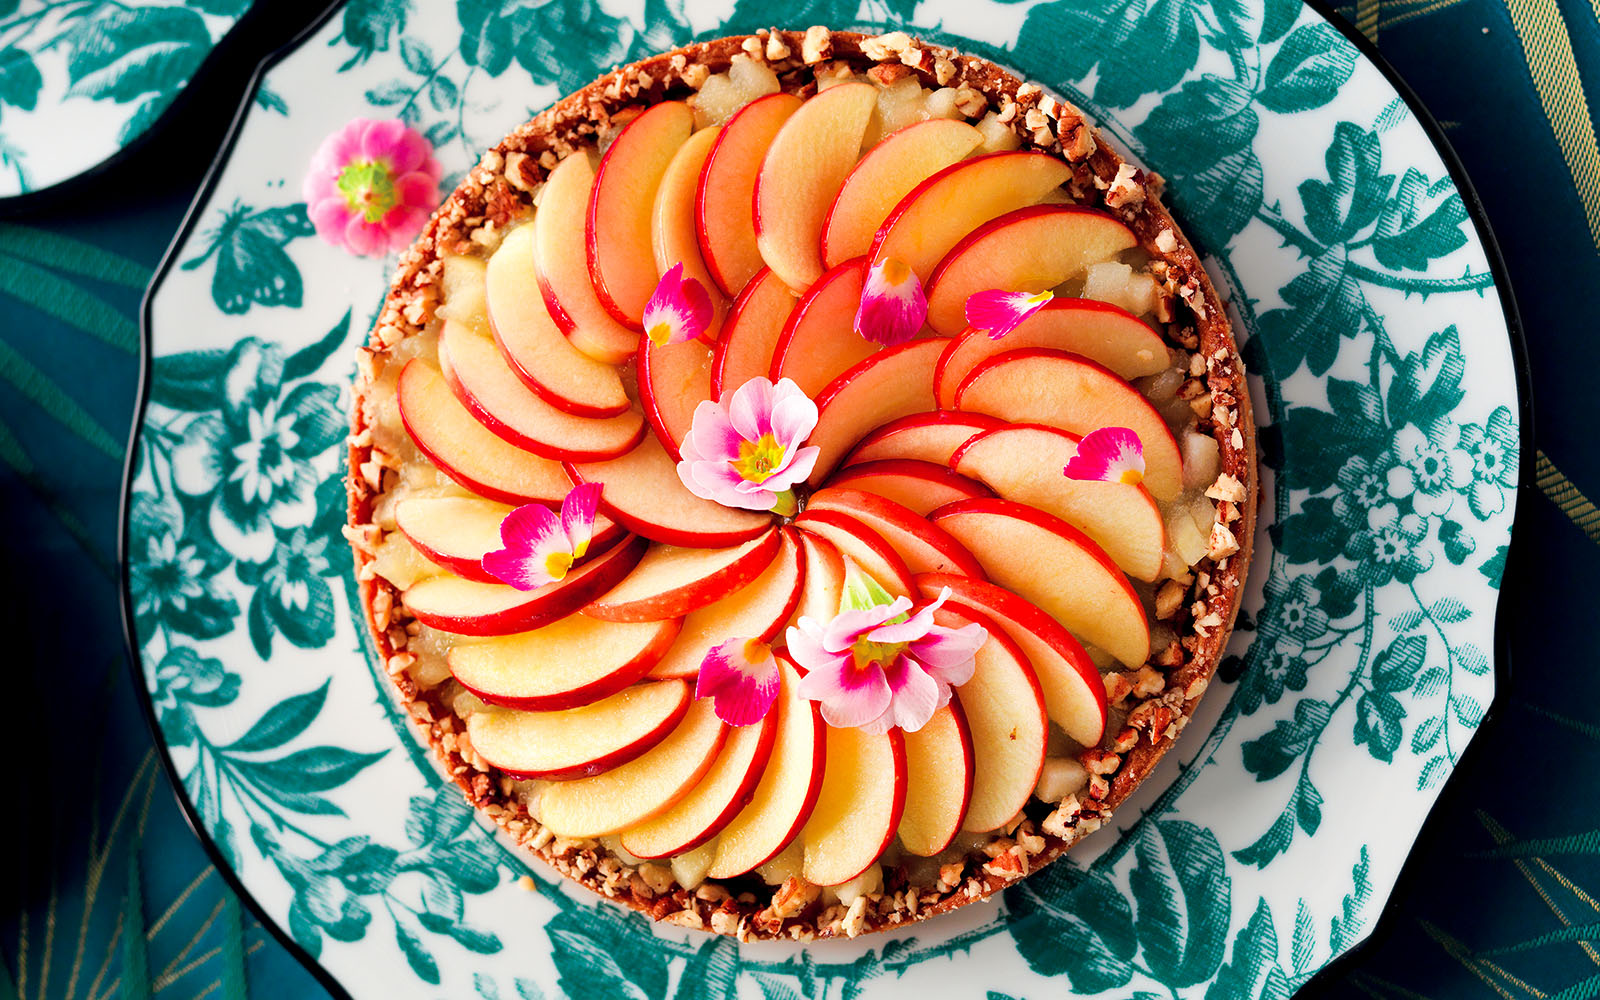 Recipe Frangipane tart with pecan nuts and caramelized apples